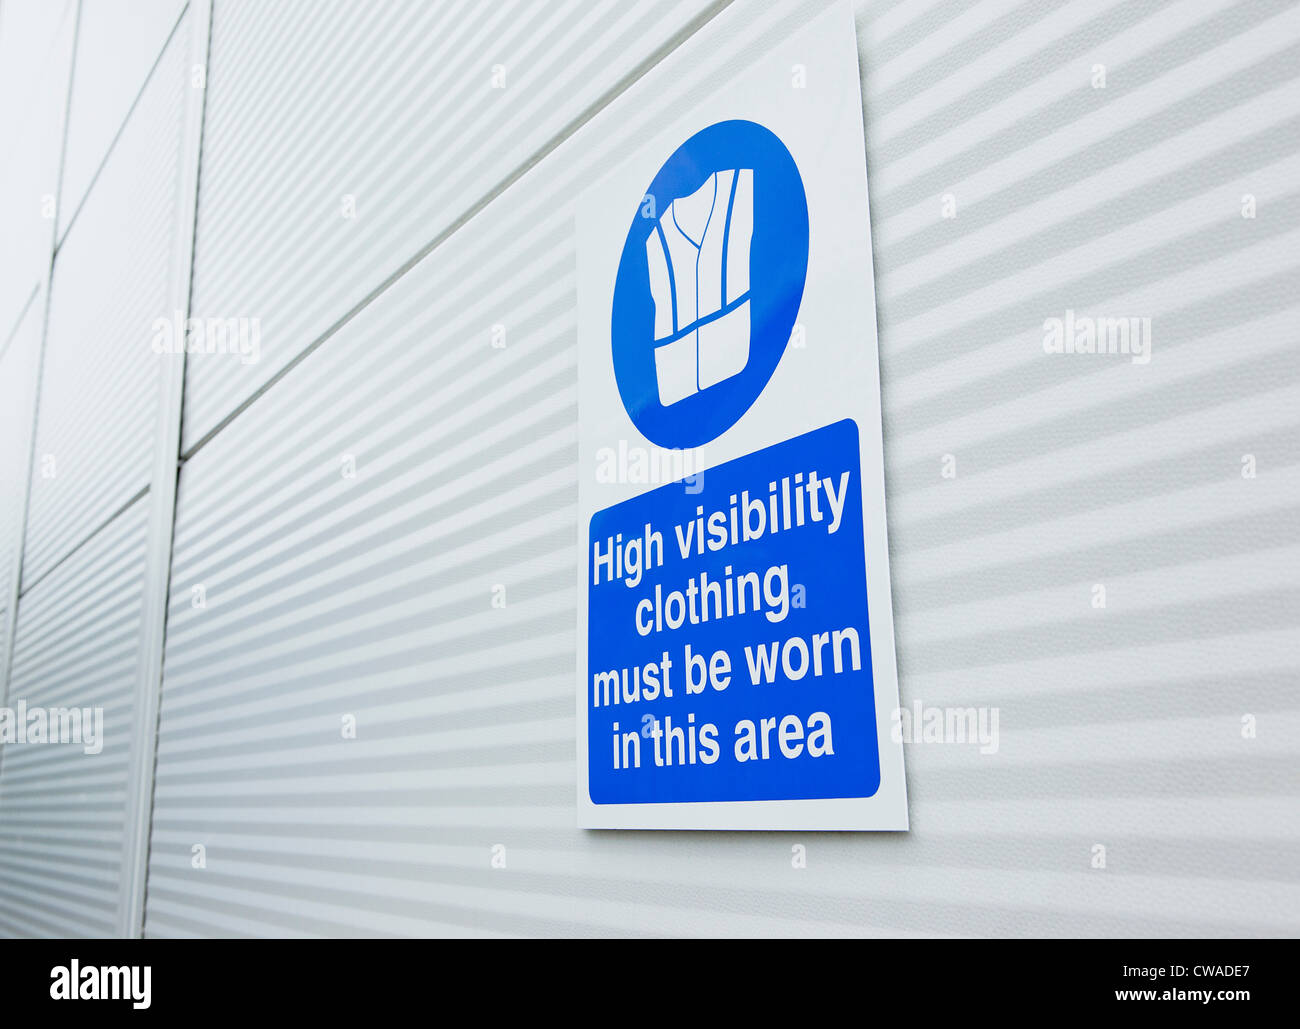 High visibility clothing sign on warehouse door - Stock Image